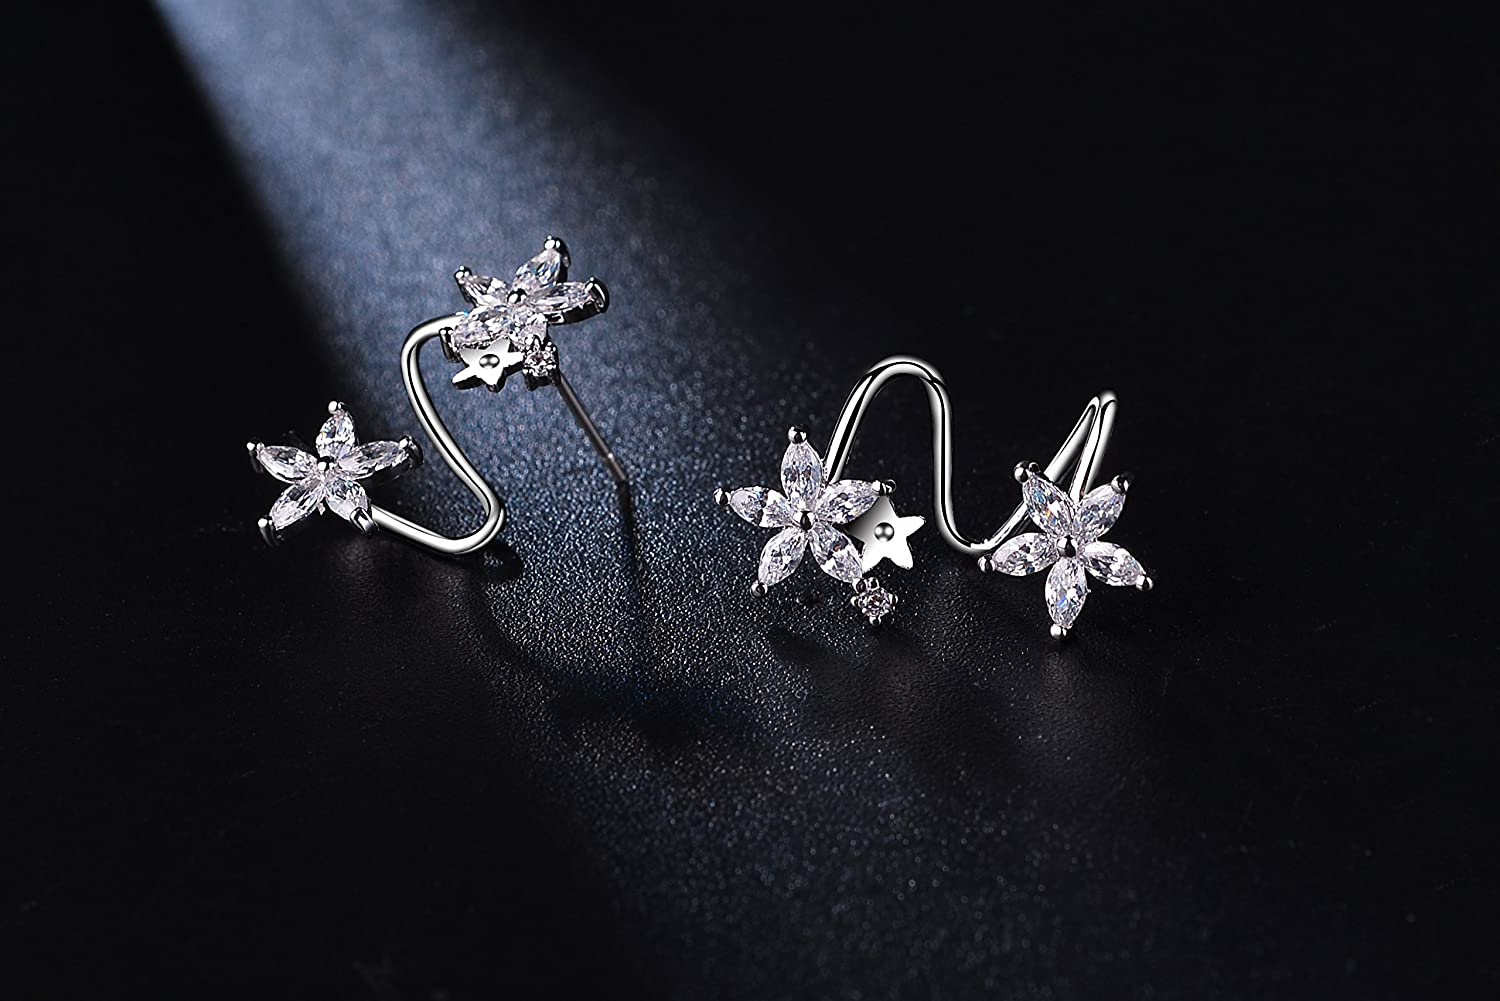 Aganippe Silver Color Flower Stud Earrings With Cubic Zircon Fashion Star Stud Earrings for Girls